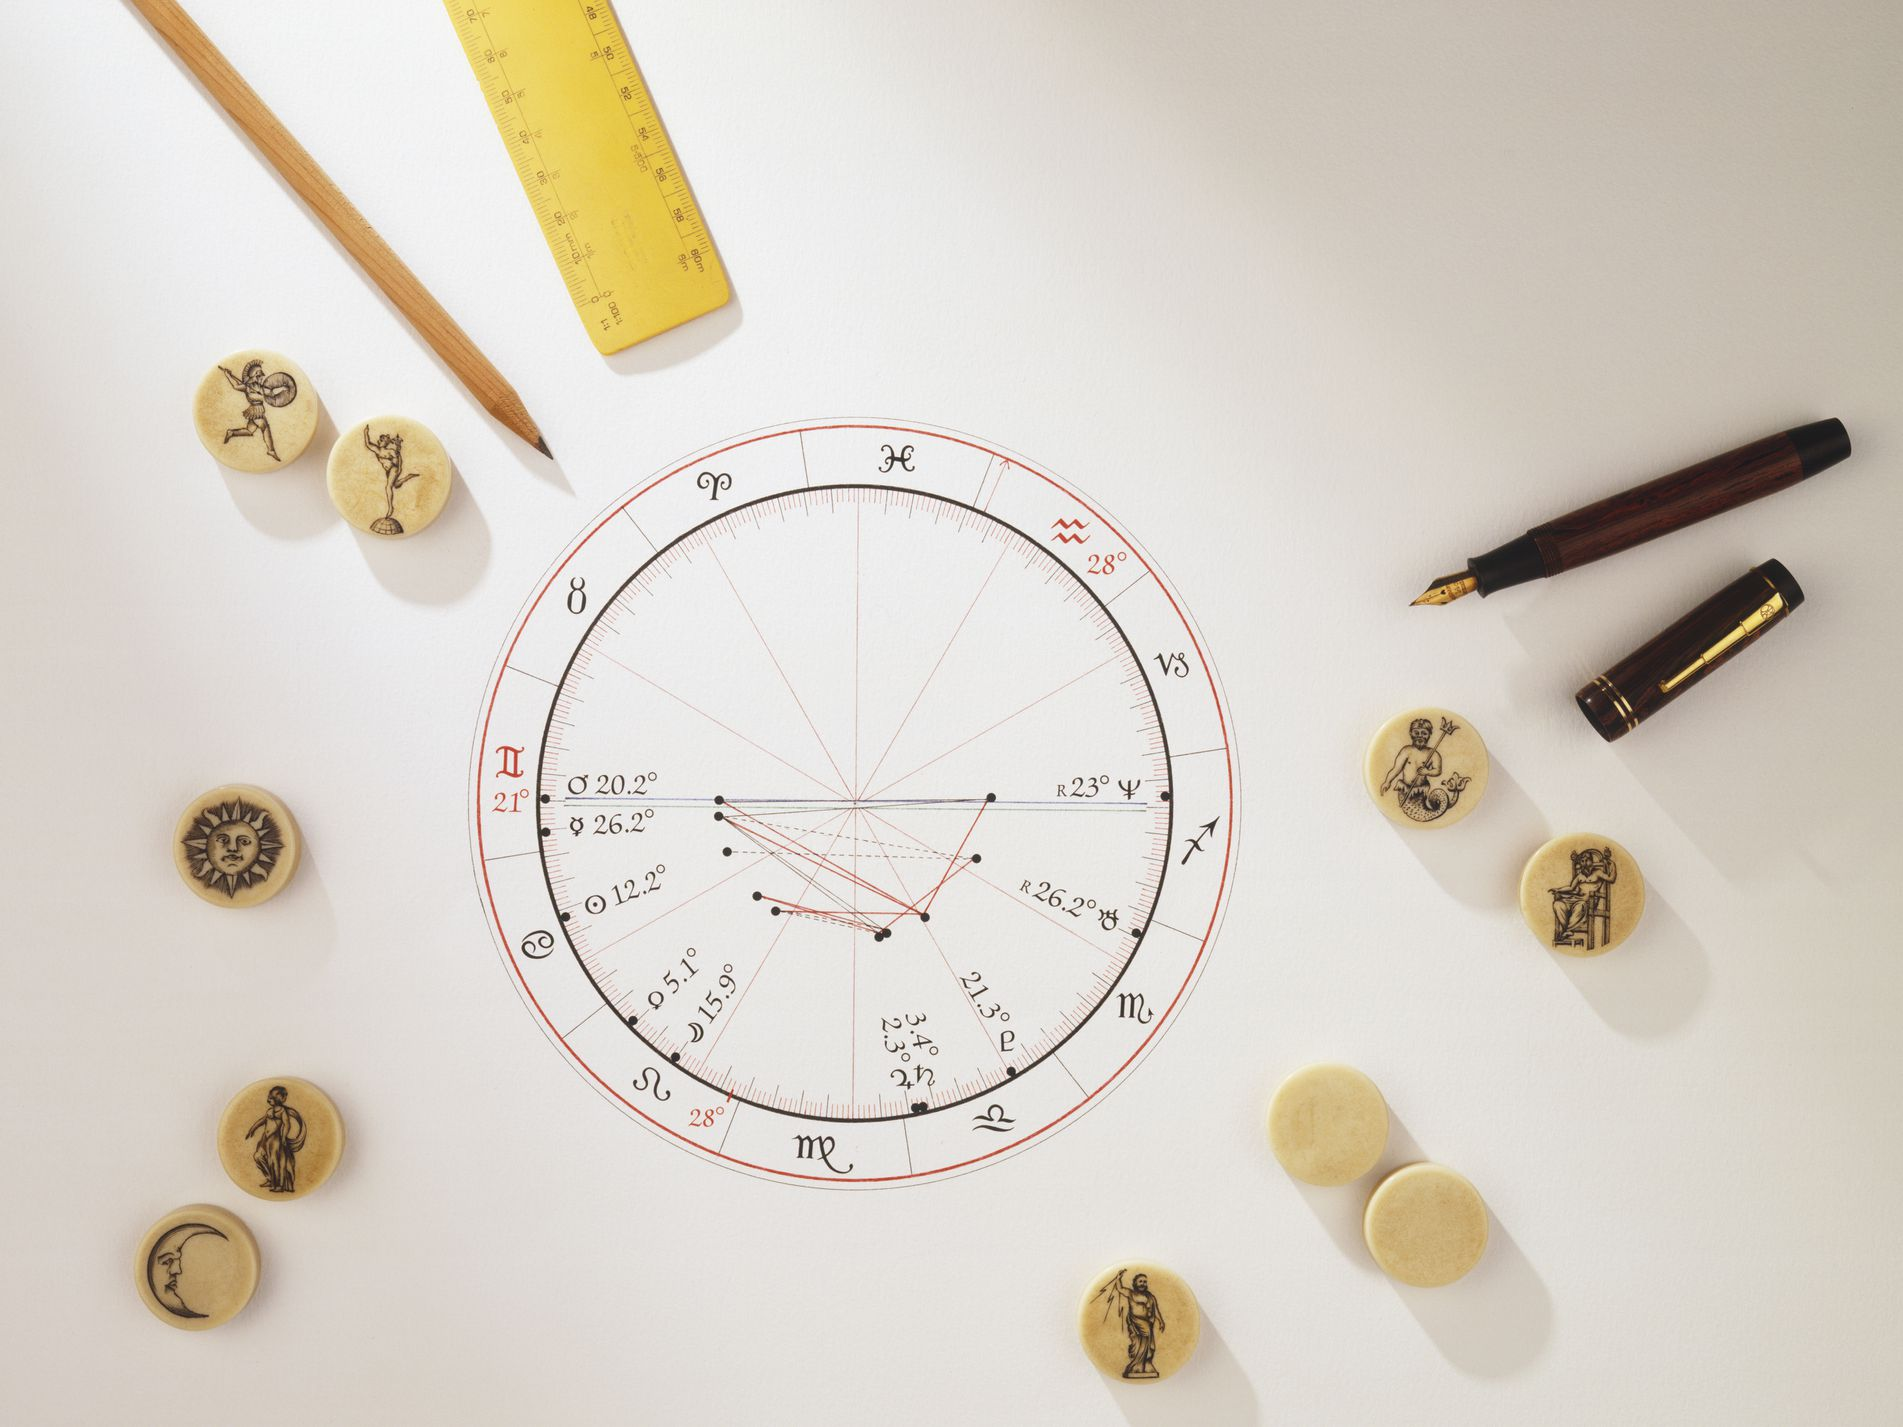 20 Web Sites With Free Birth Charts